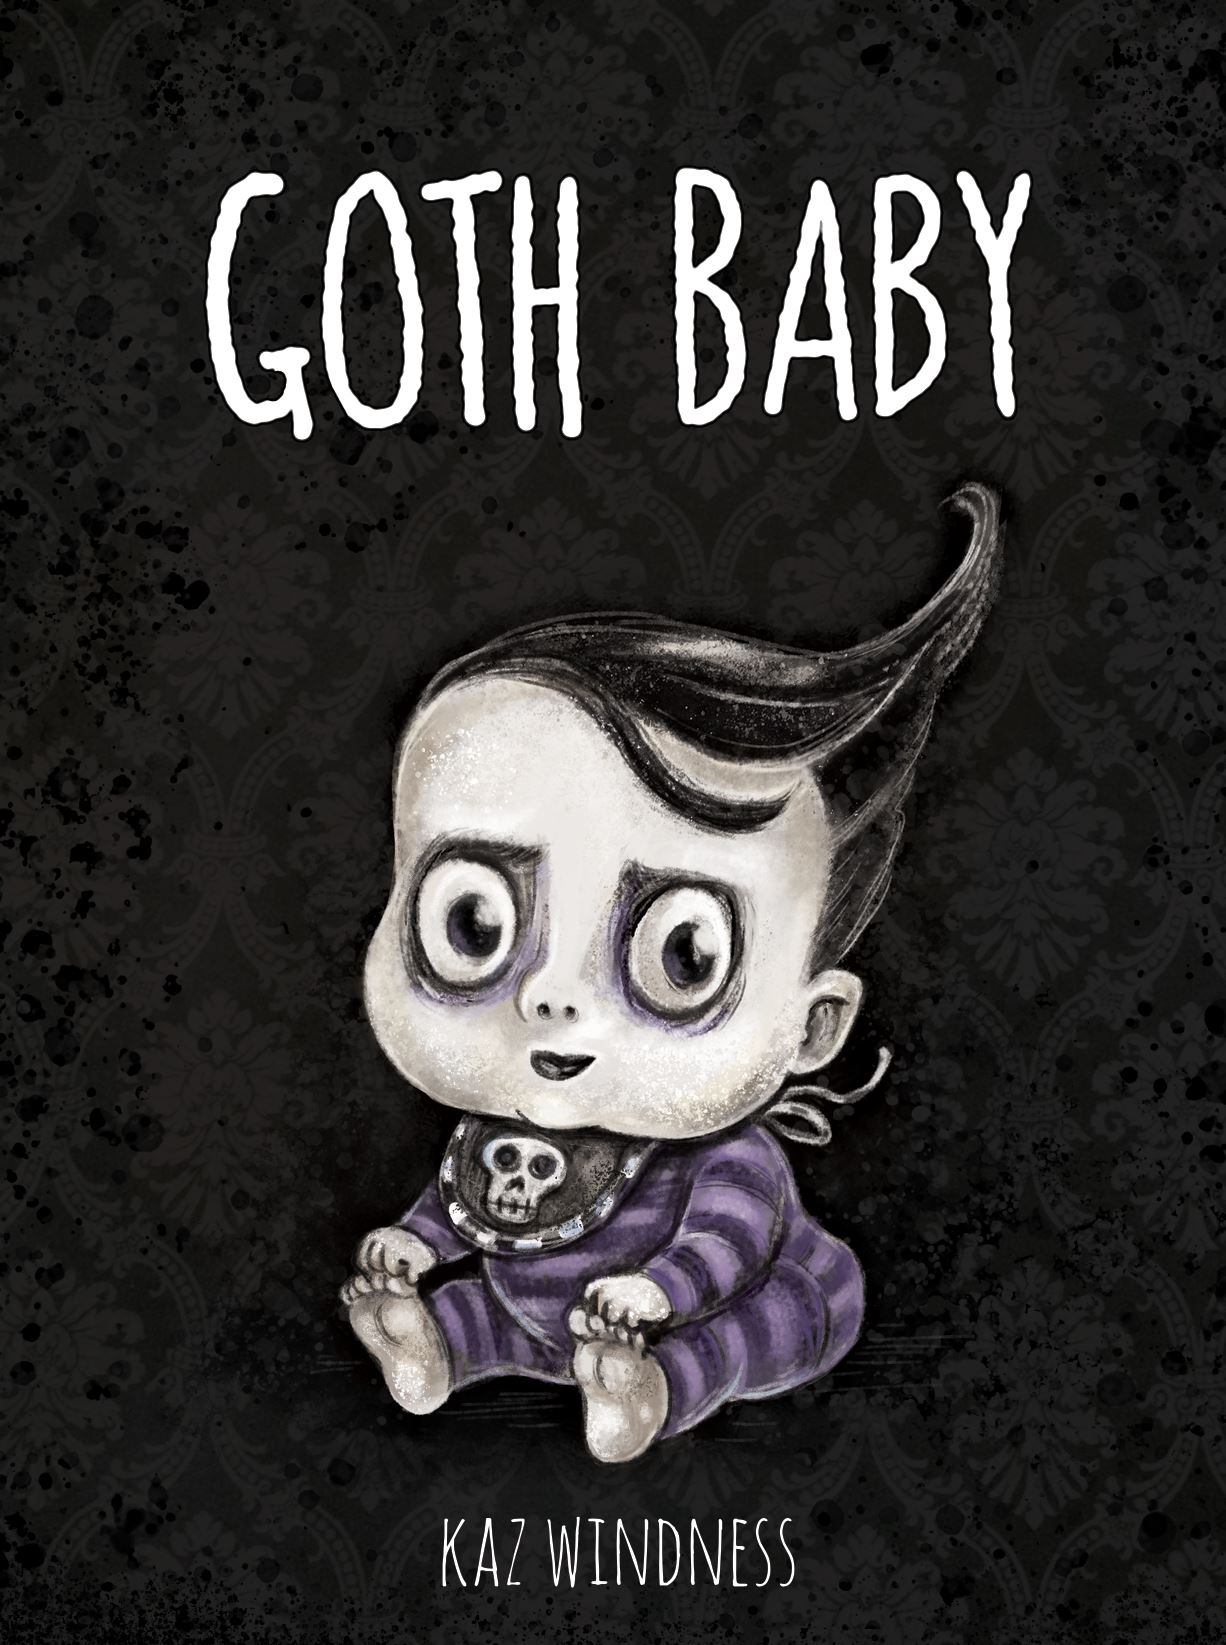 goth-baby-cover-sample-windness.JPG